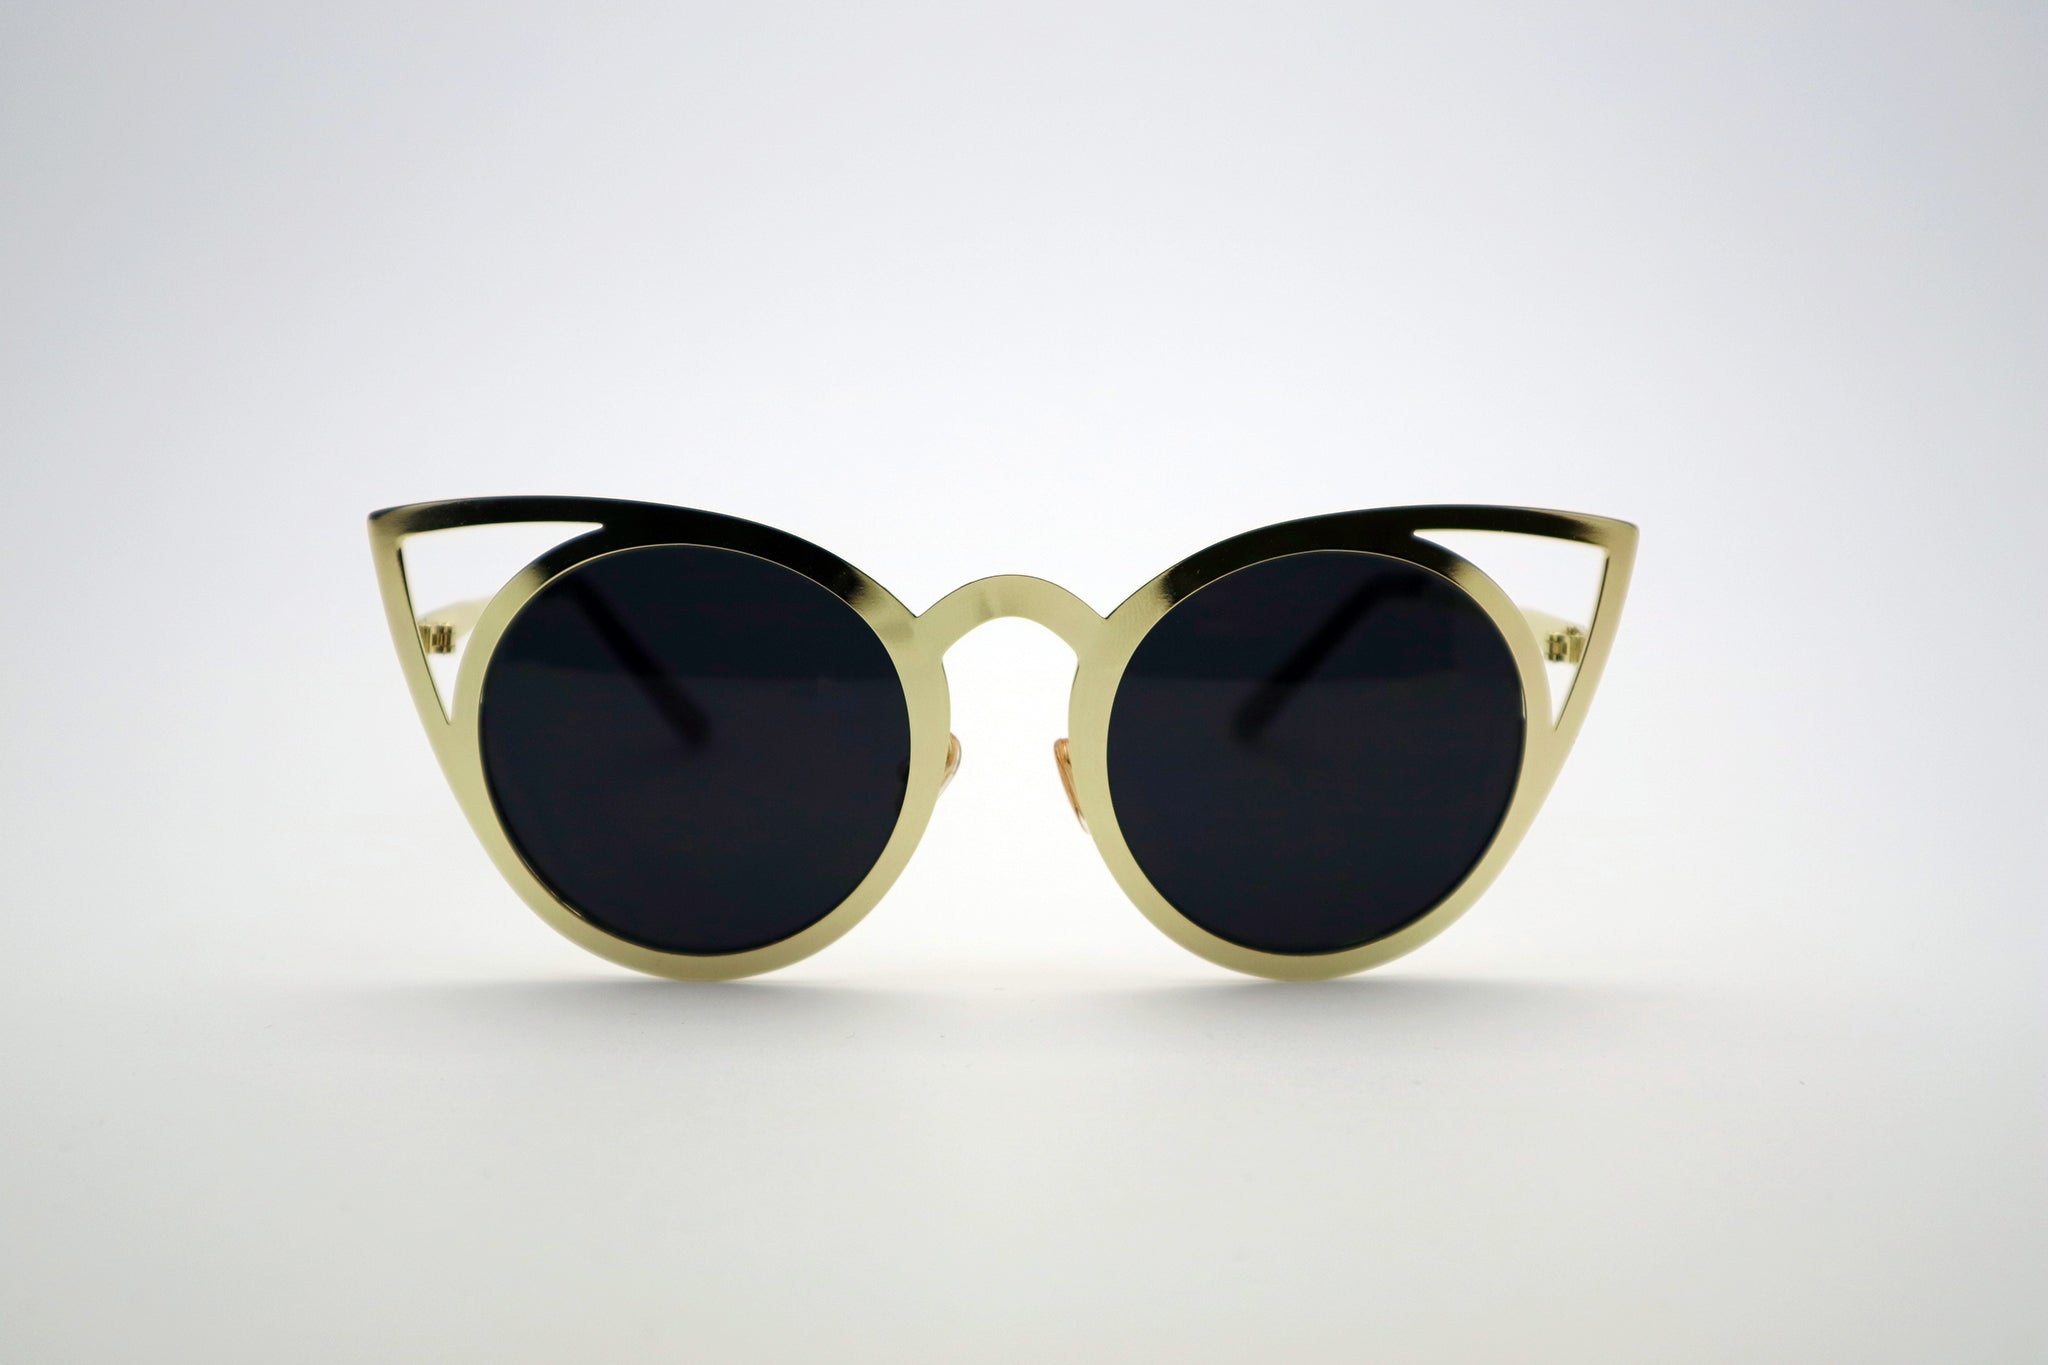 c7775ba572 Queens Love - Pussy Power Sunglasses - Gold Black